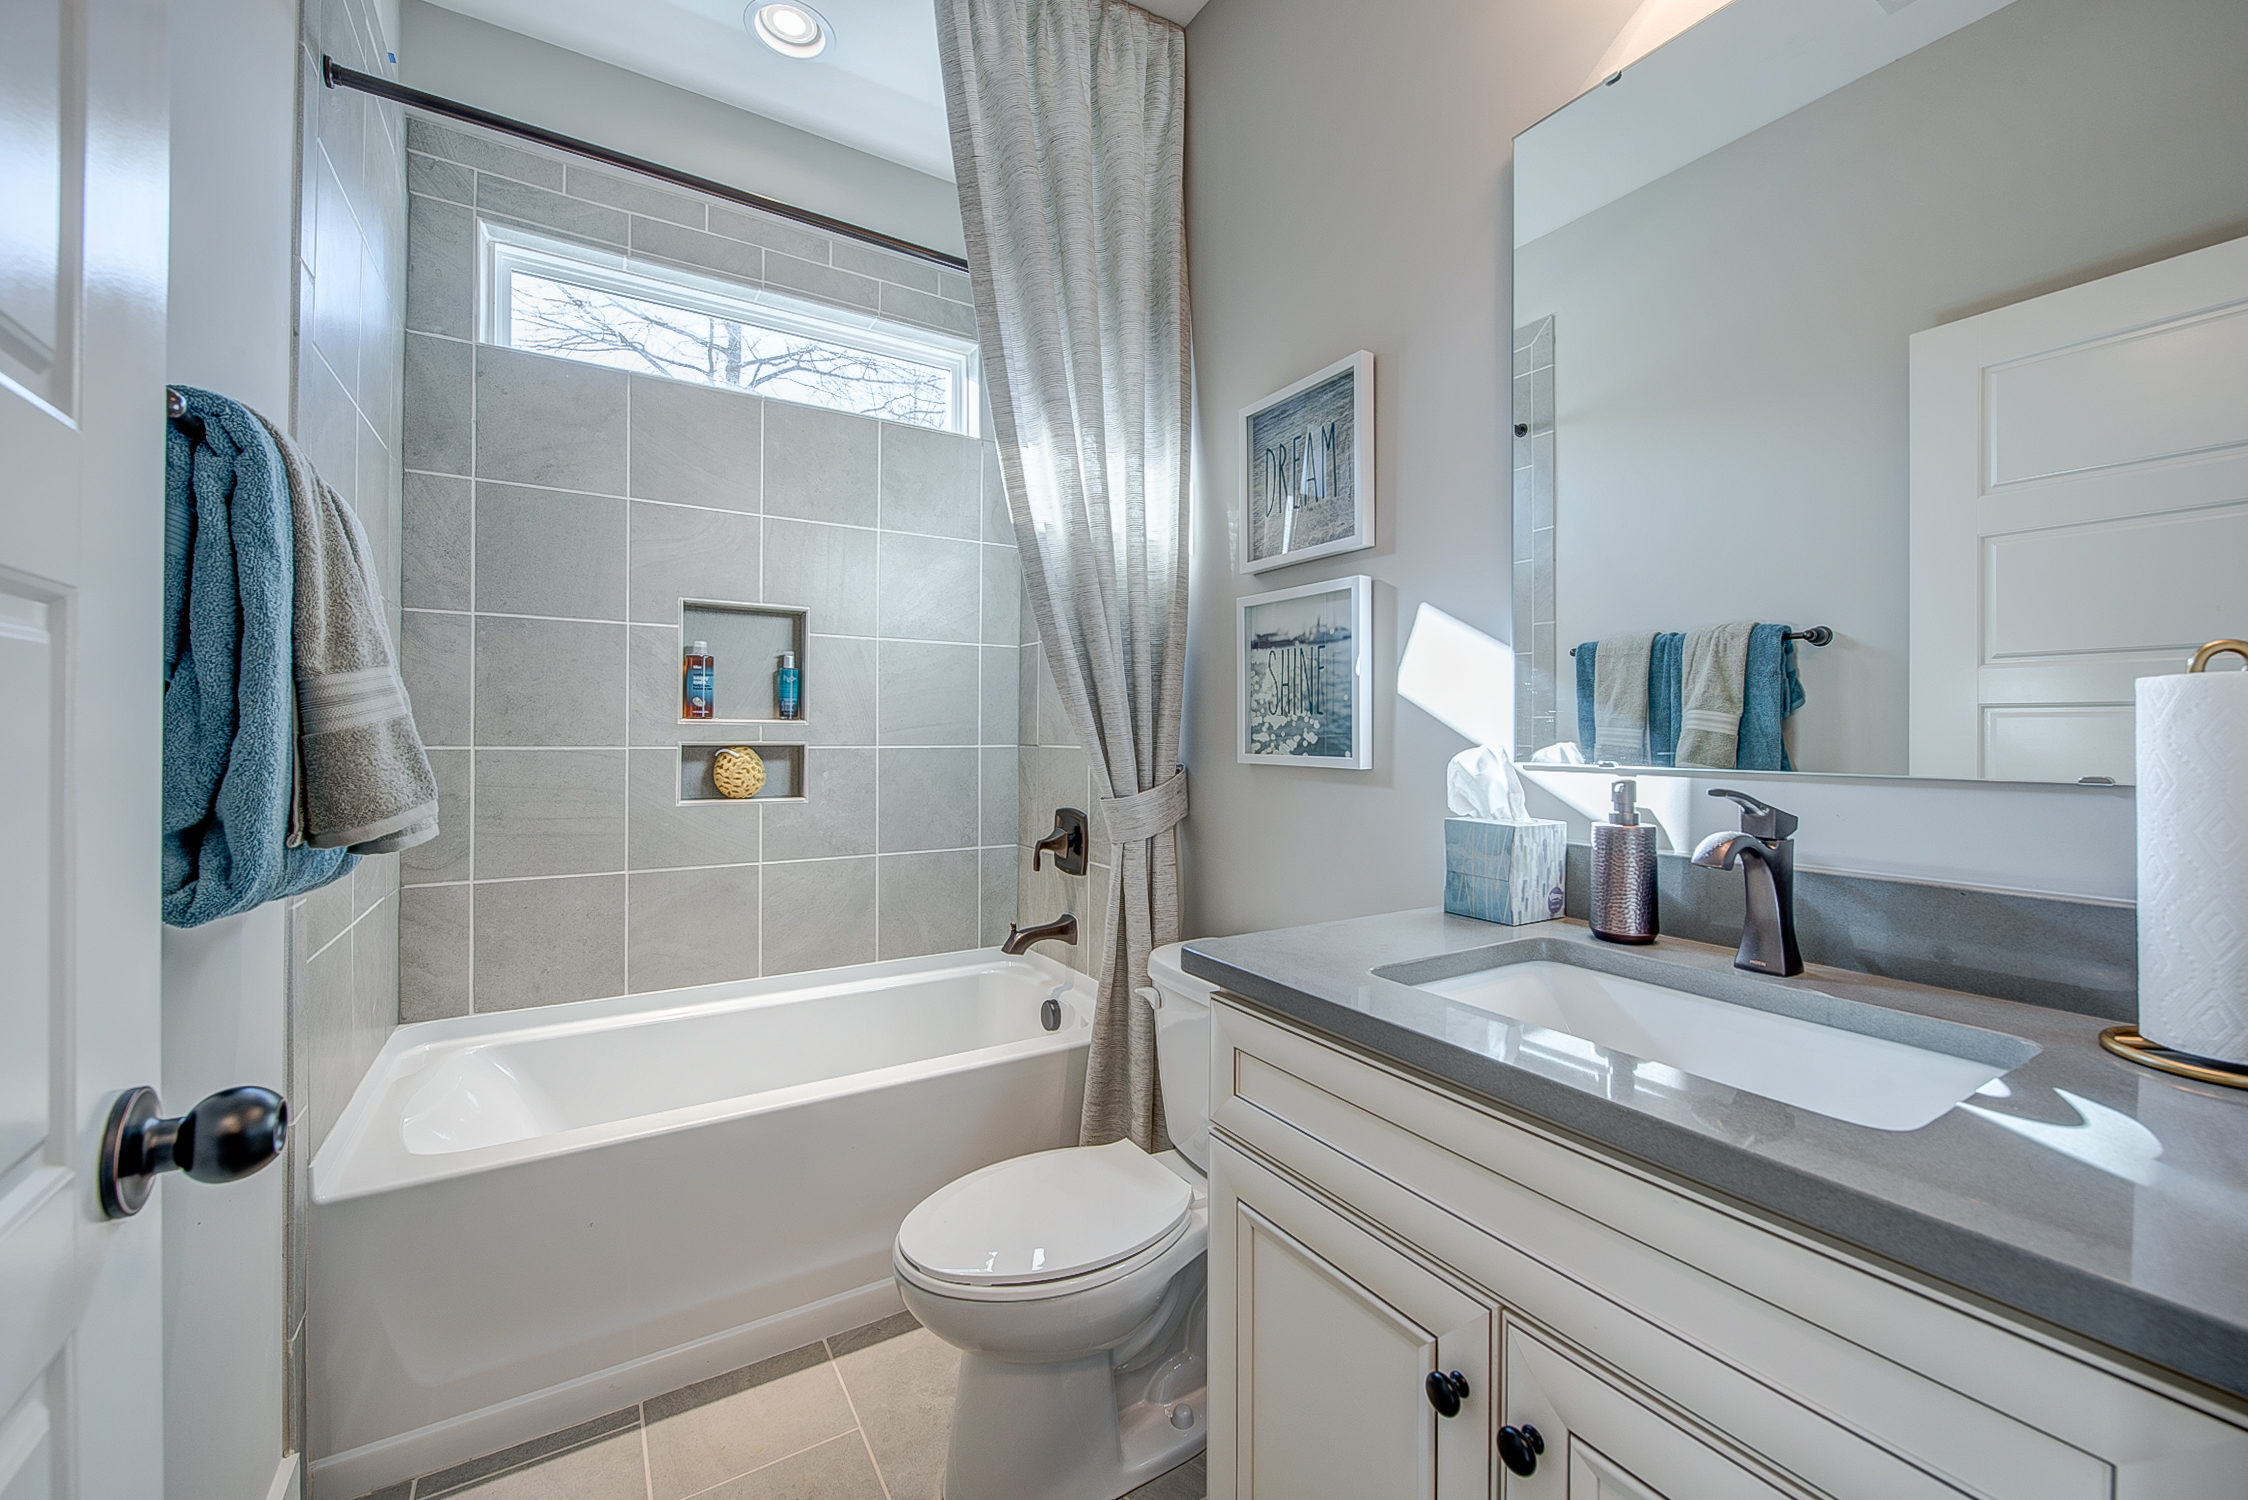 104-bushney-loop-mooresville-print-009-13-bathroom-2248x1500-300dpi_32914681354_o.jpg